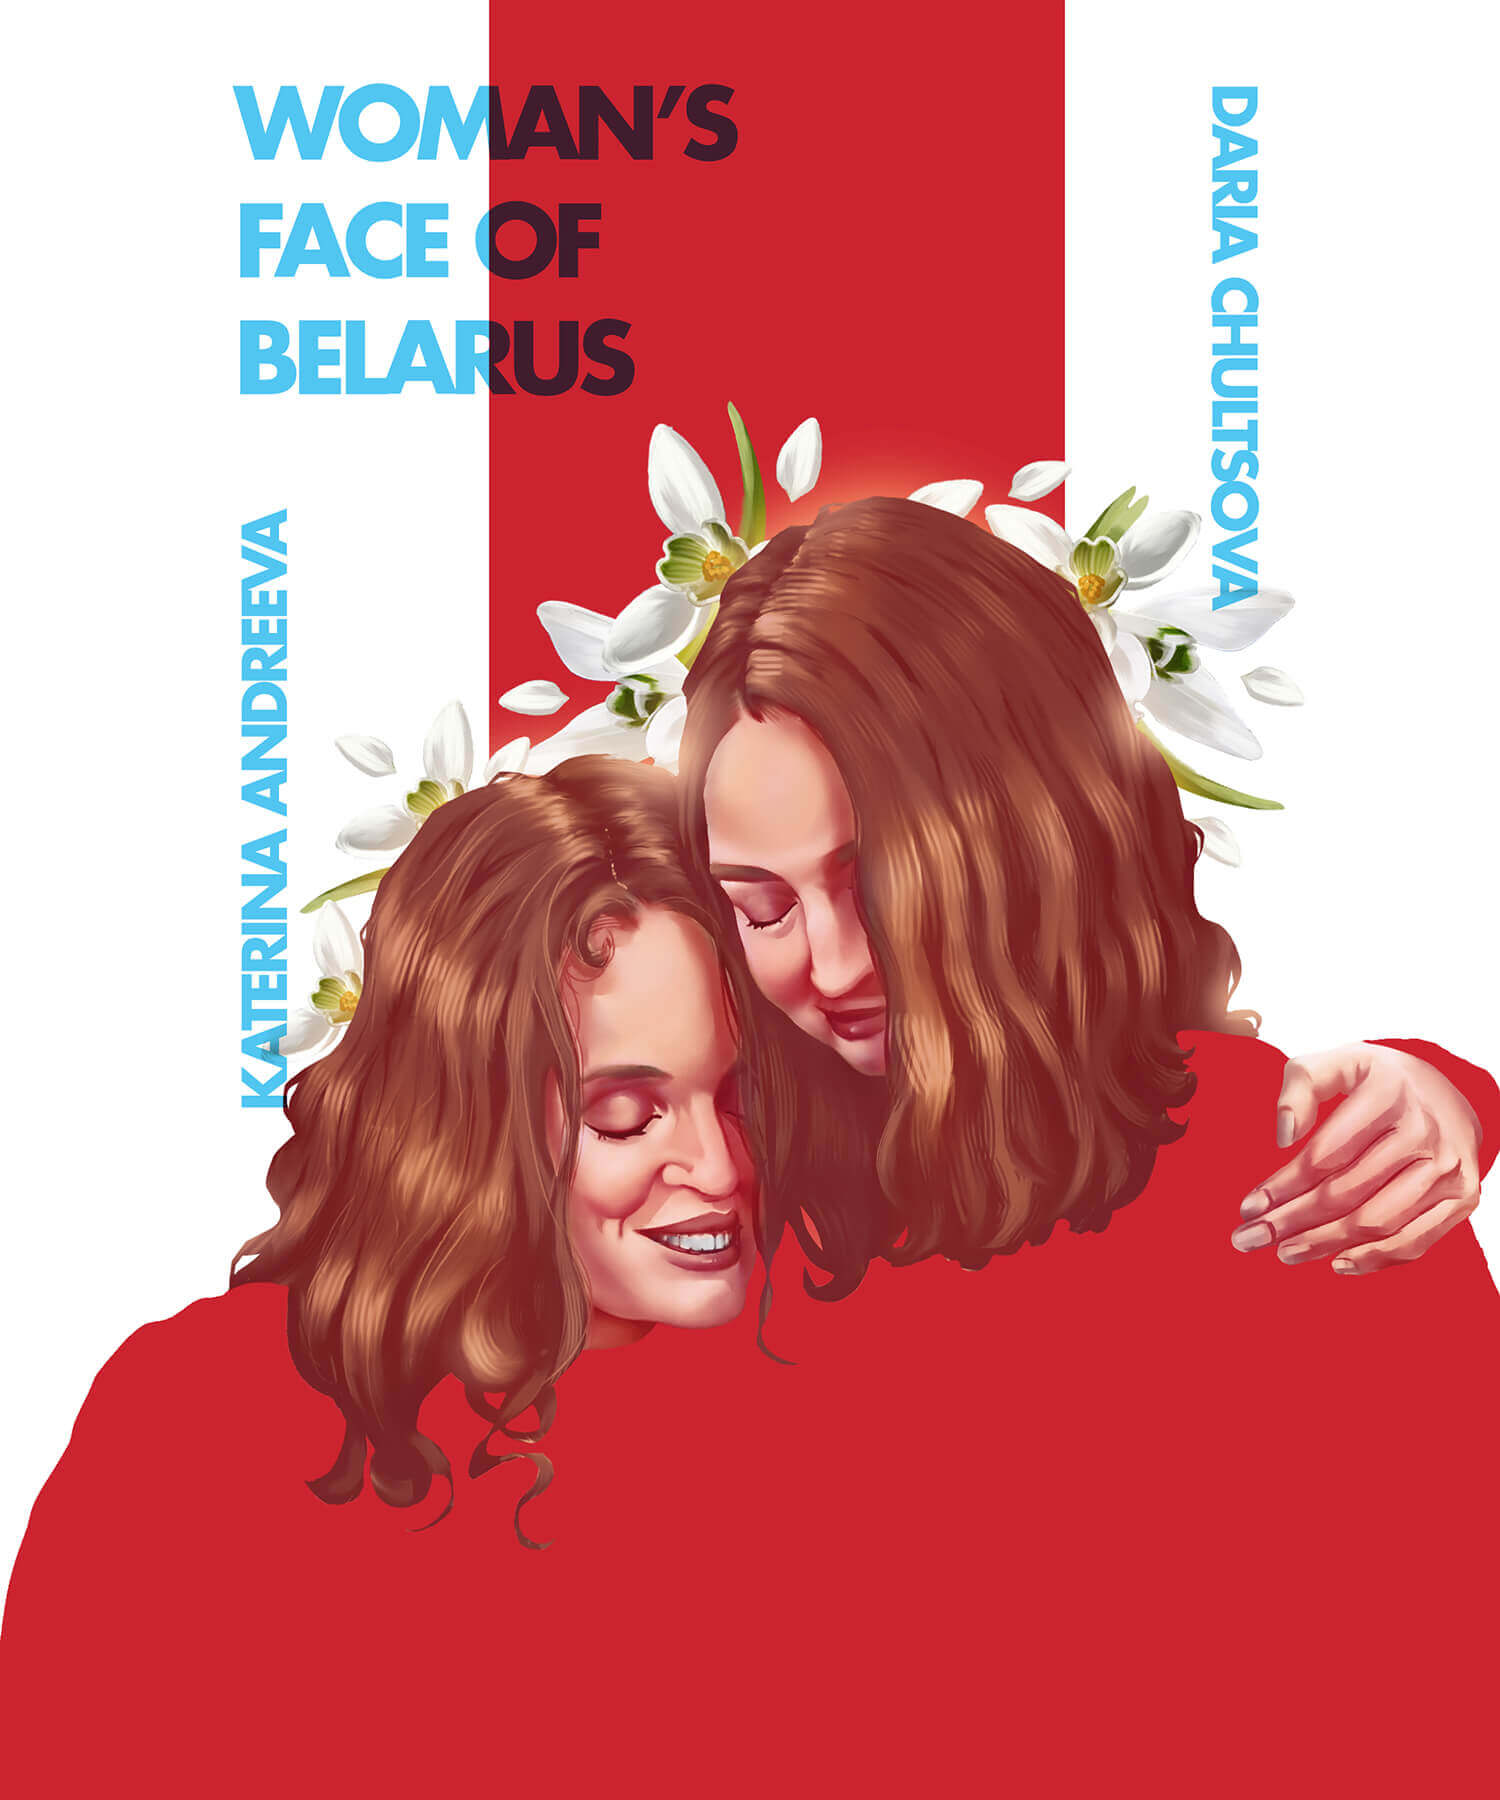 Woman's face of Belarus